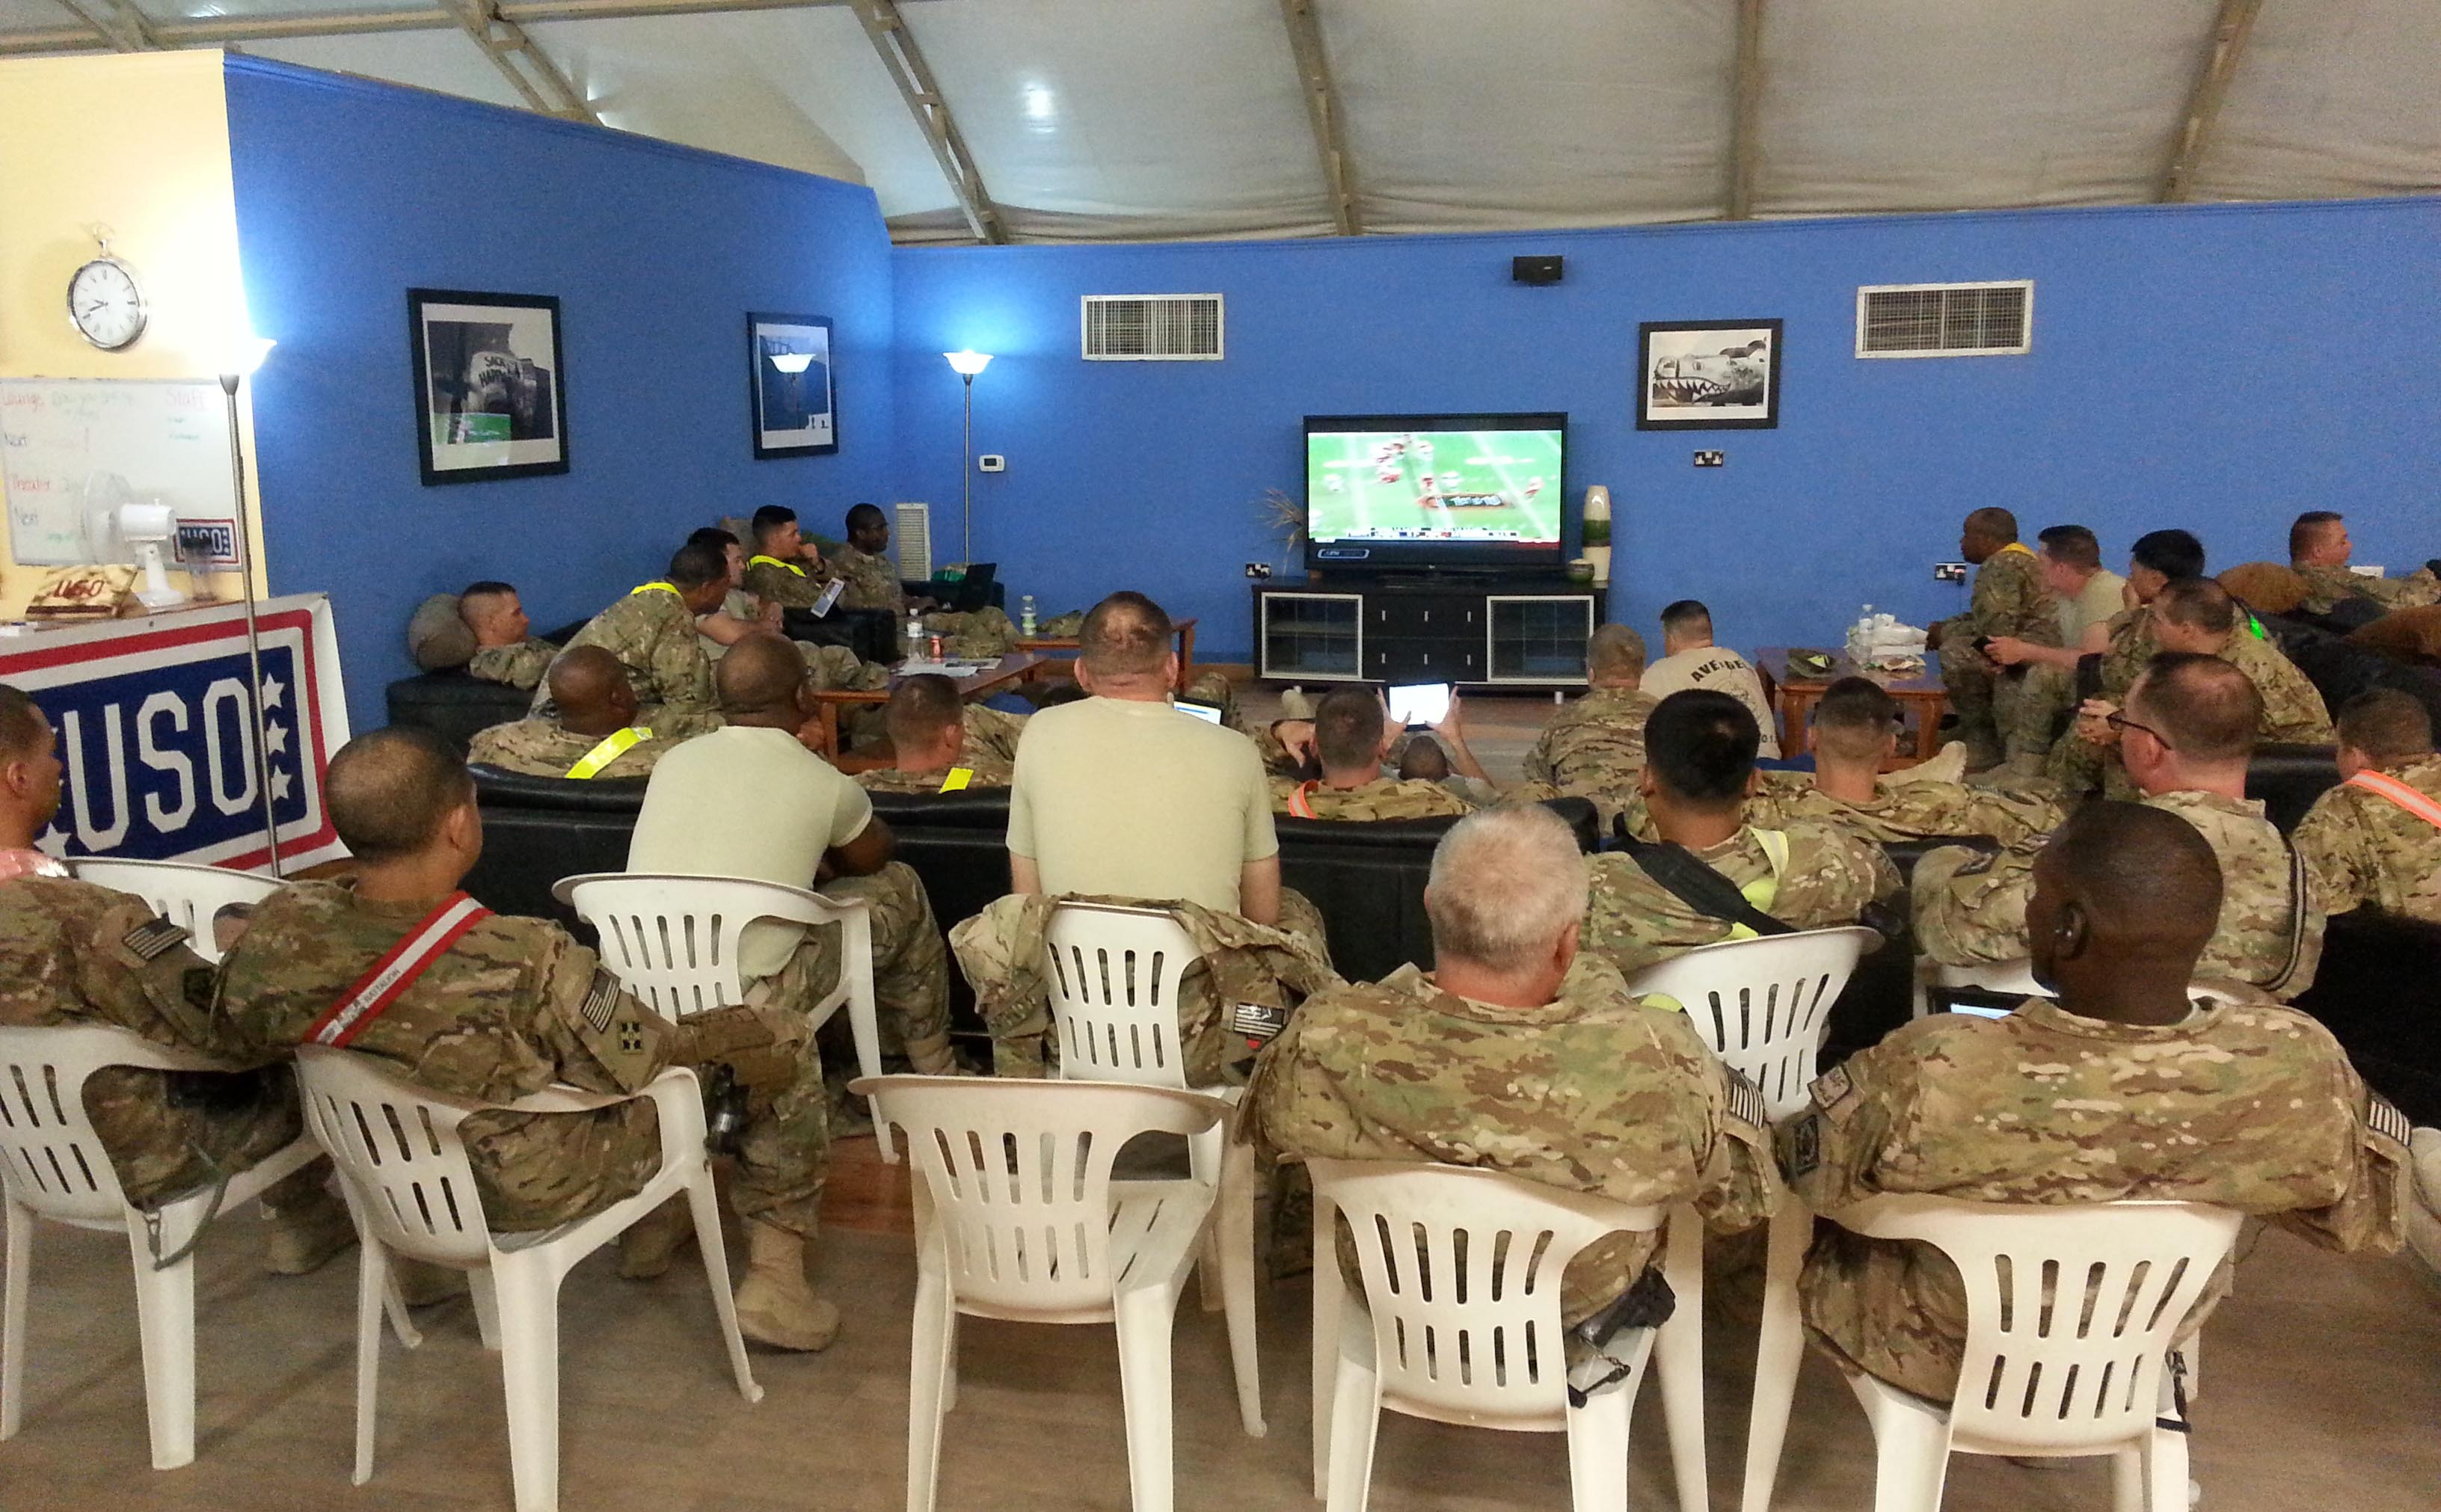 Troops gather at USO Kandahar in Afghanistan to watch football, courtesy of NFL Game Pass. USO photos by Daniel Wood